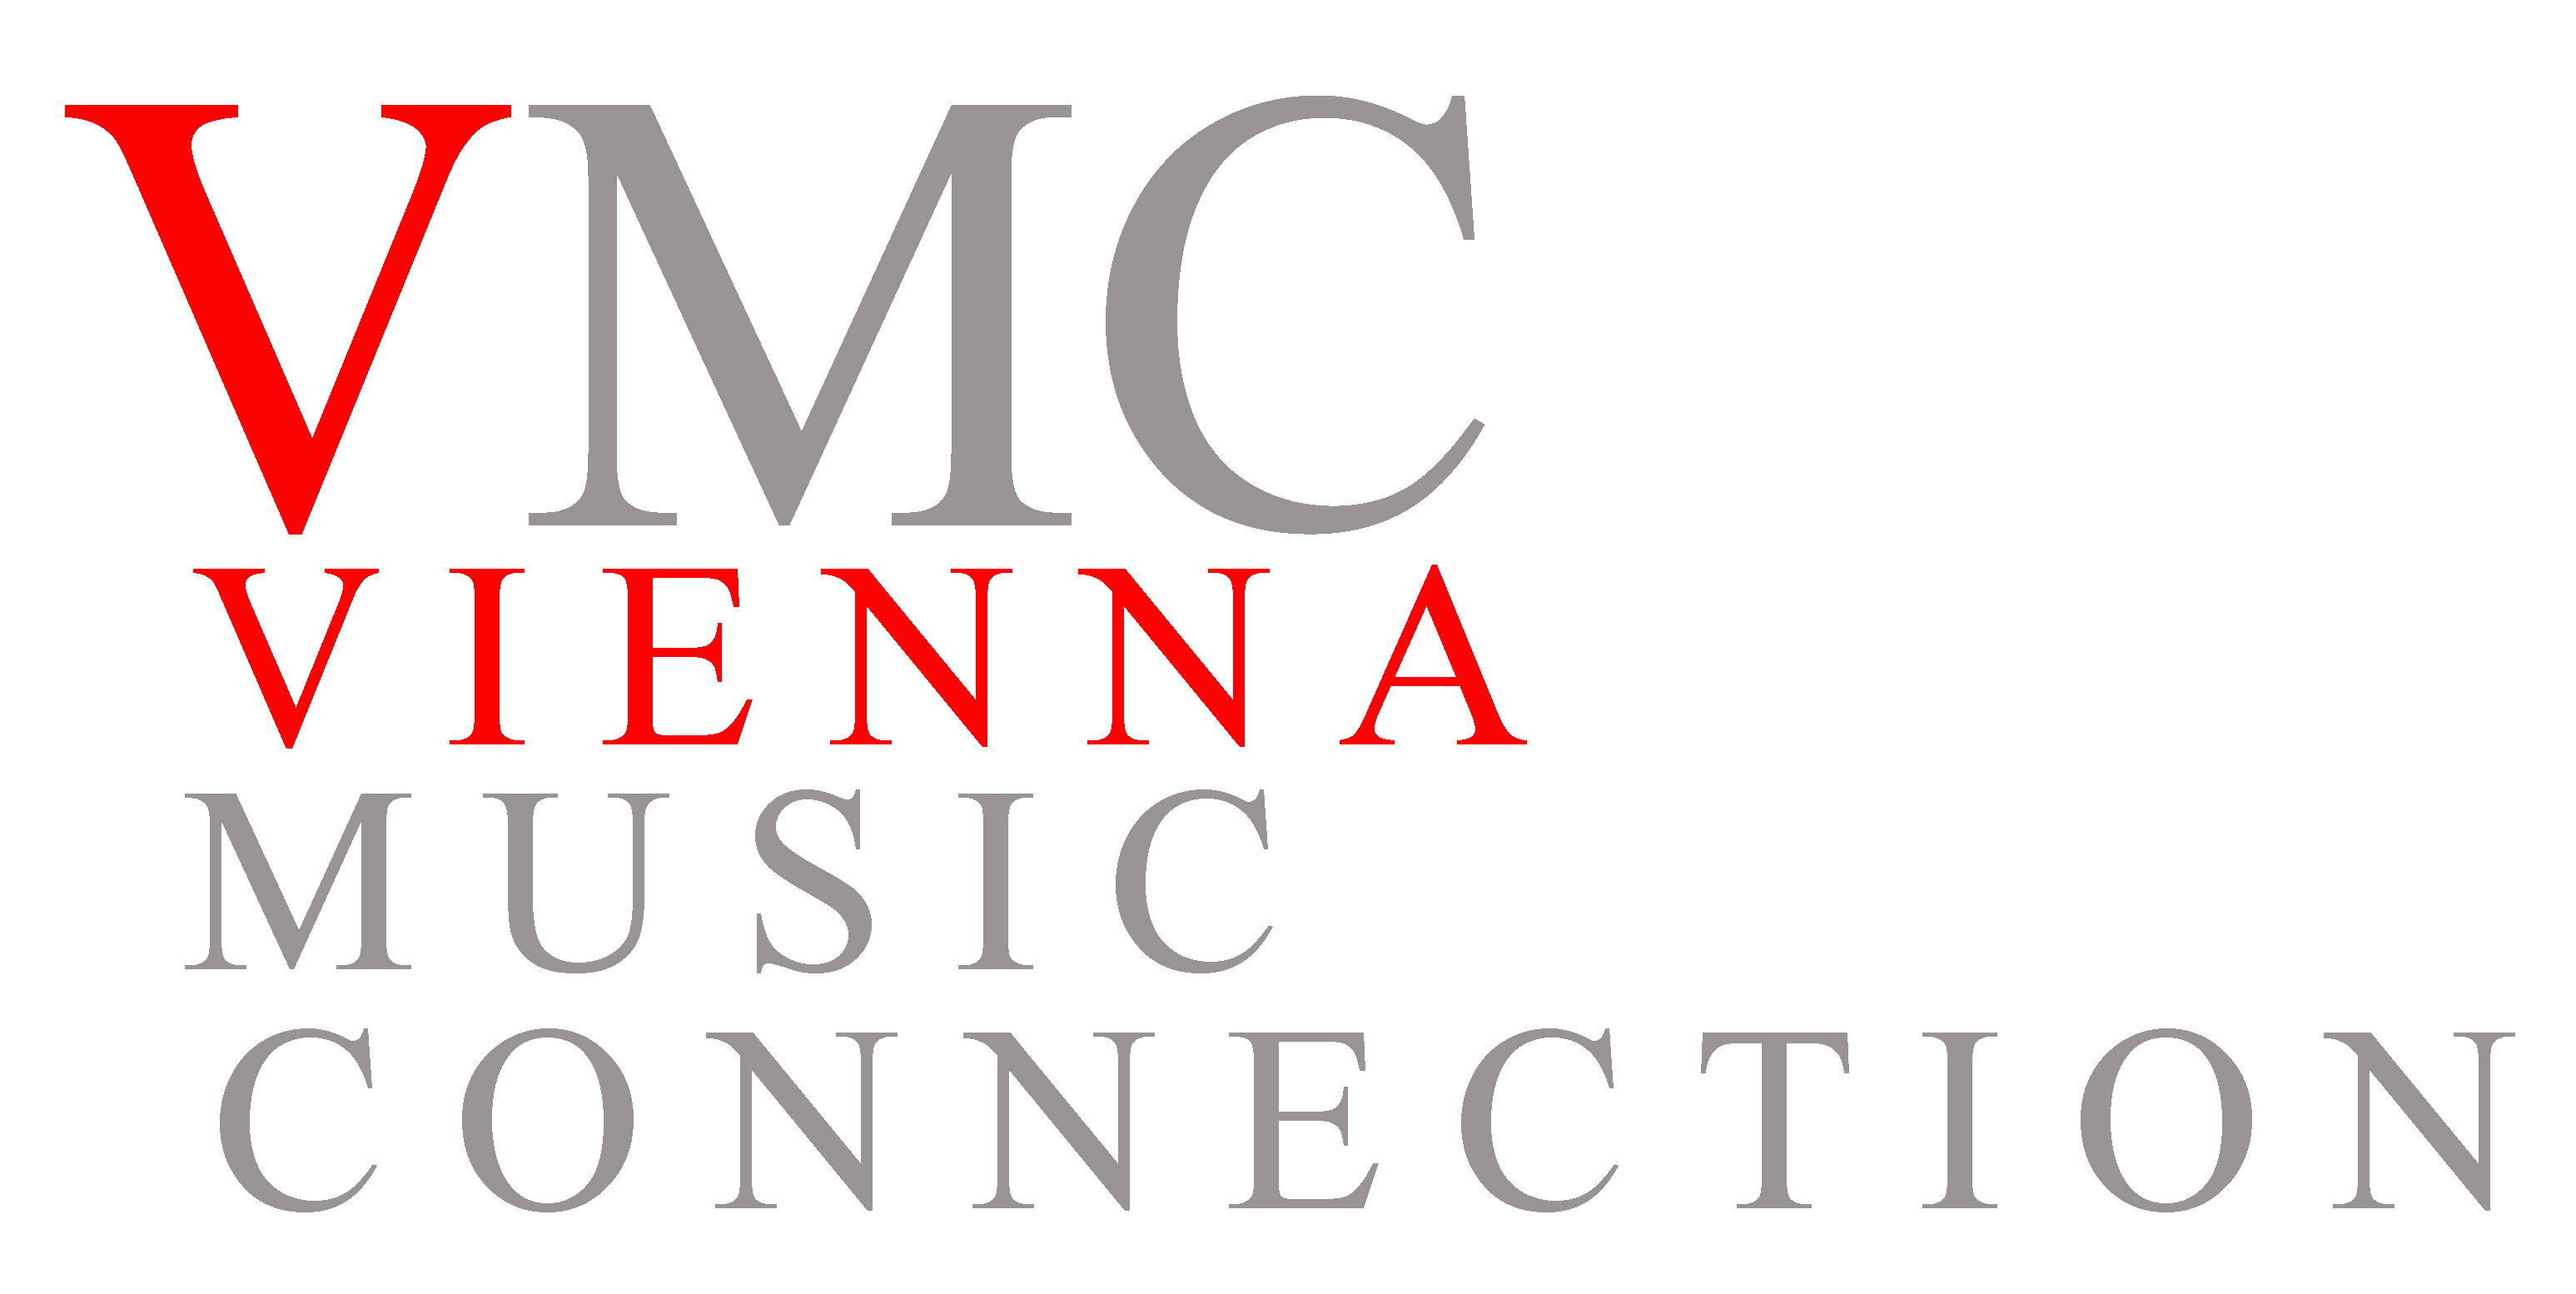 Viena Music Connection